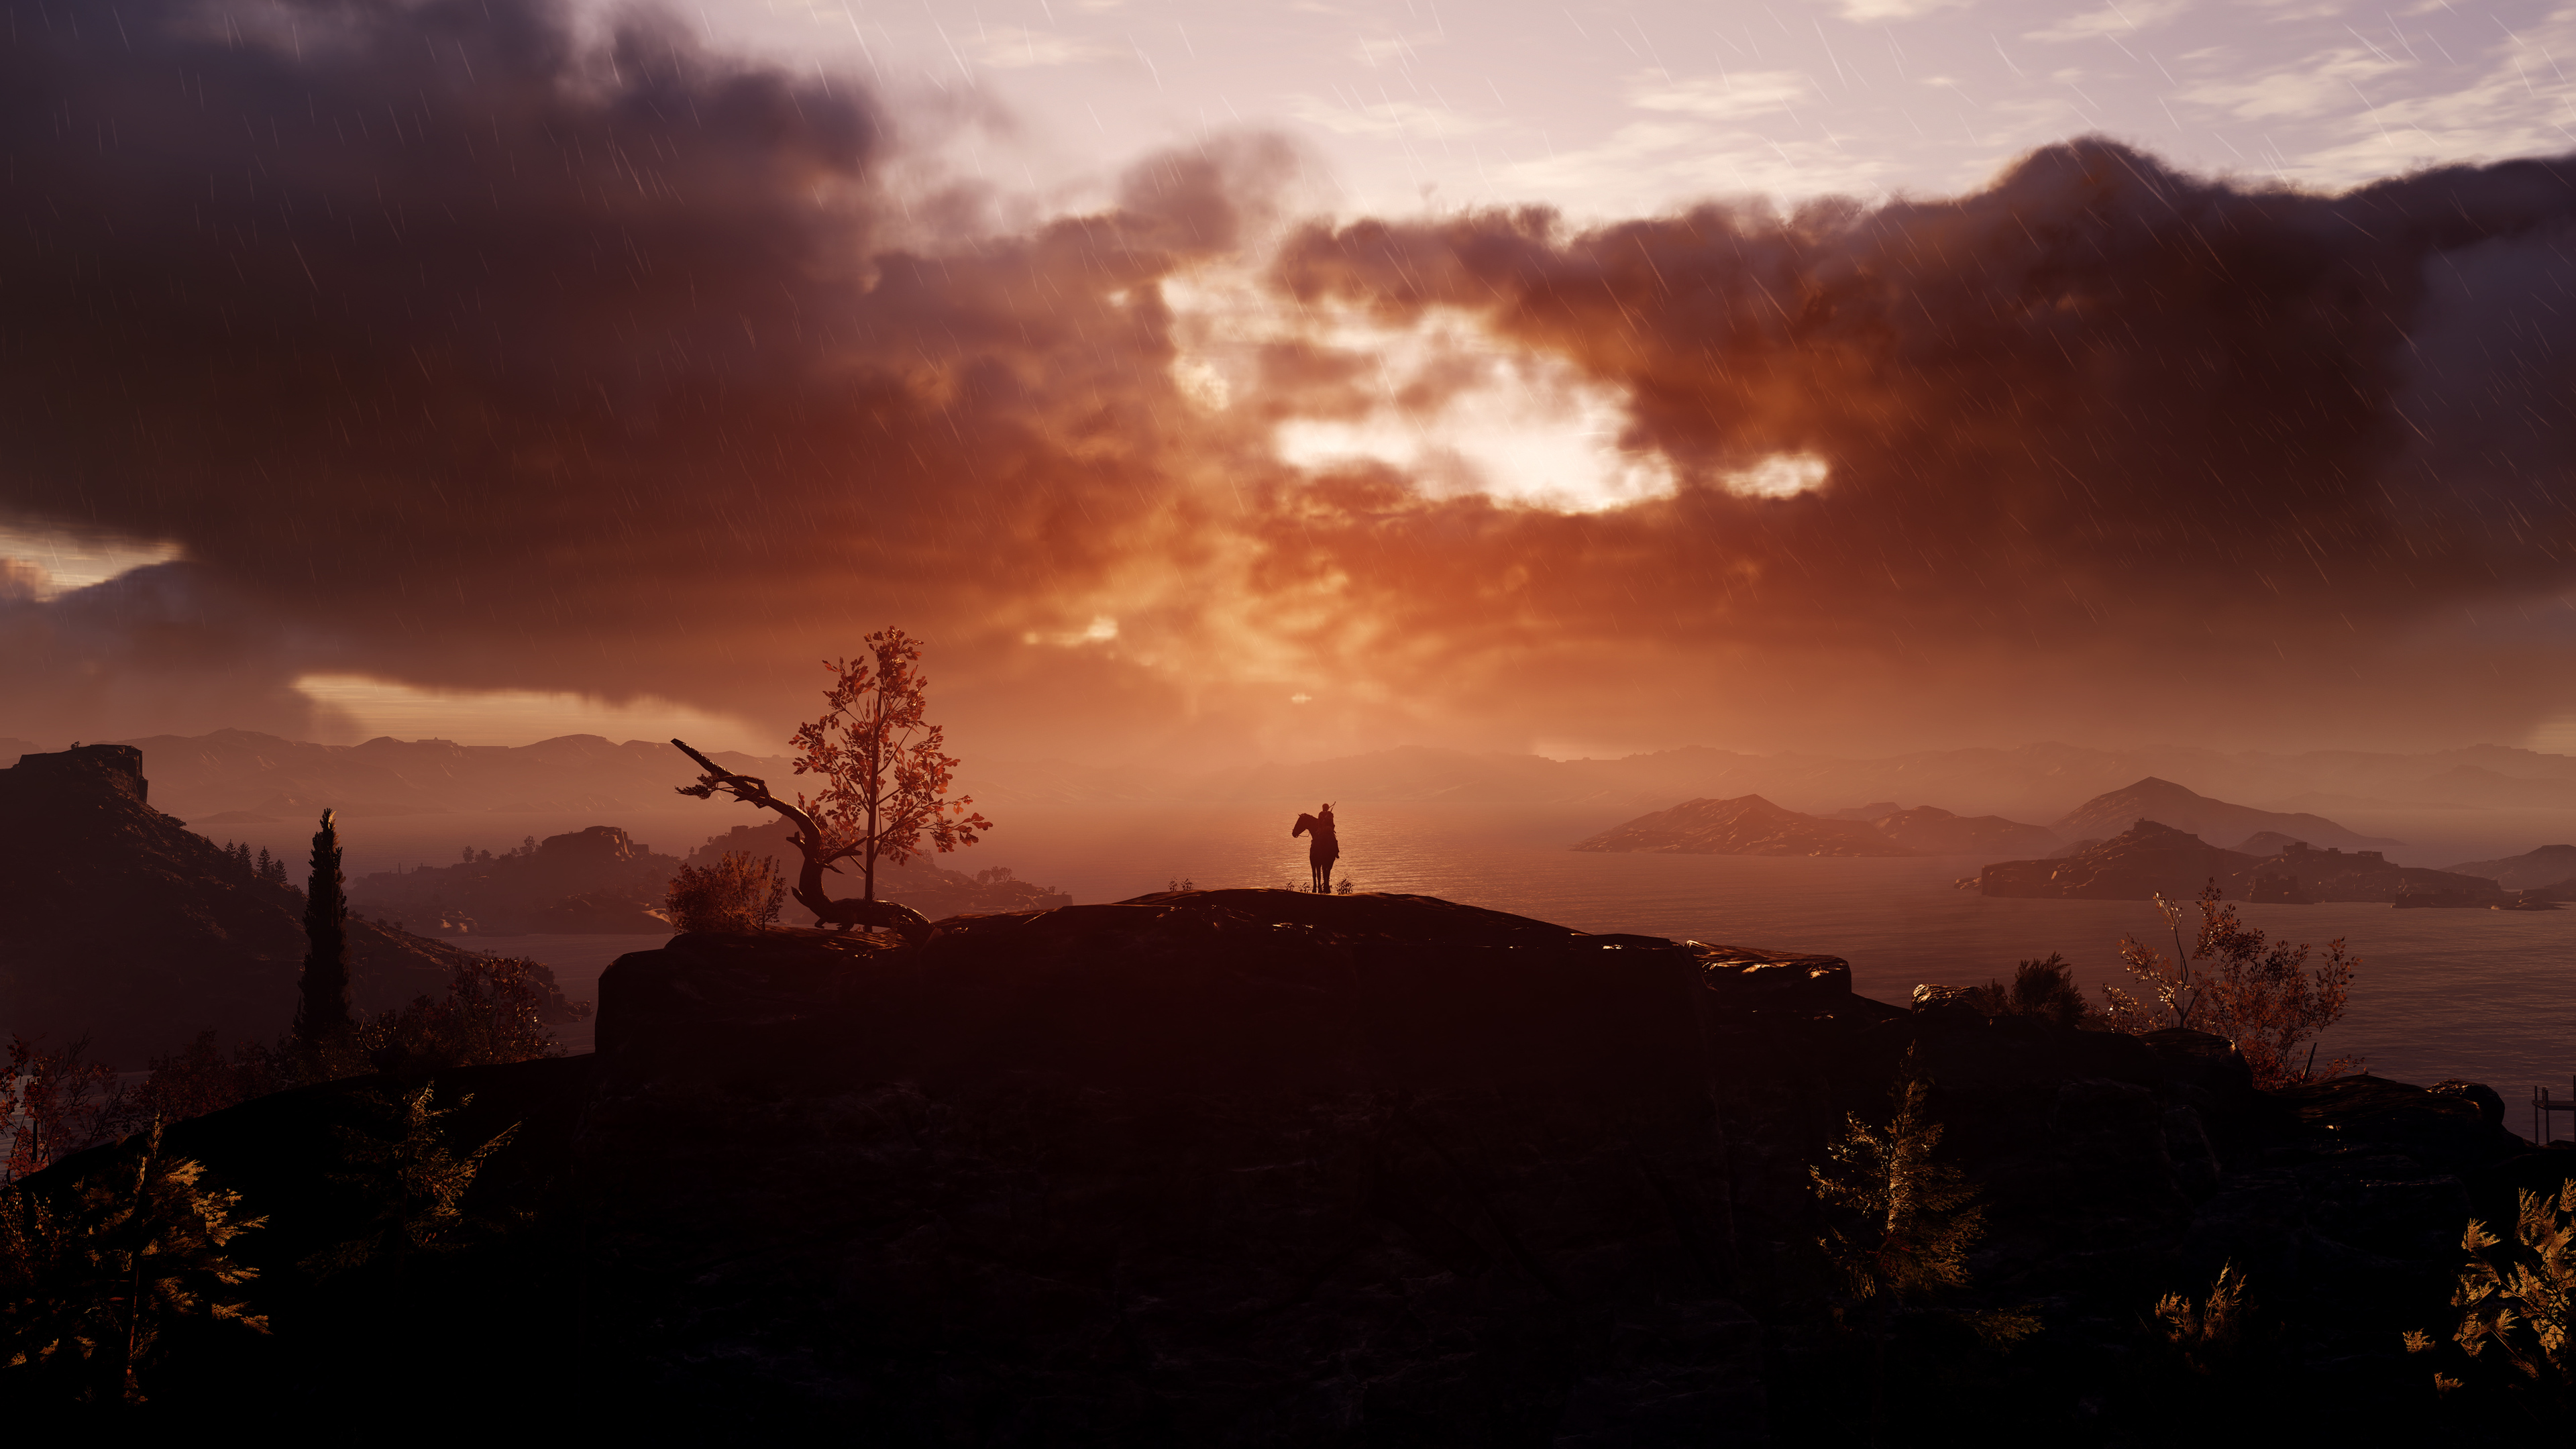 assassins creed odyssey end of the day 1541295227 - Assassins Creed Odyssey End Of The Day - hd-wallpapers, games wallpapers, assassins creed wallpapers, assassins creed odyssey wallpapers, 4k-wallpapers, 2018 games wallpapers